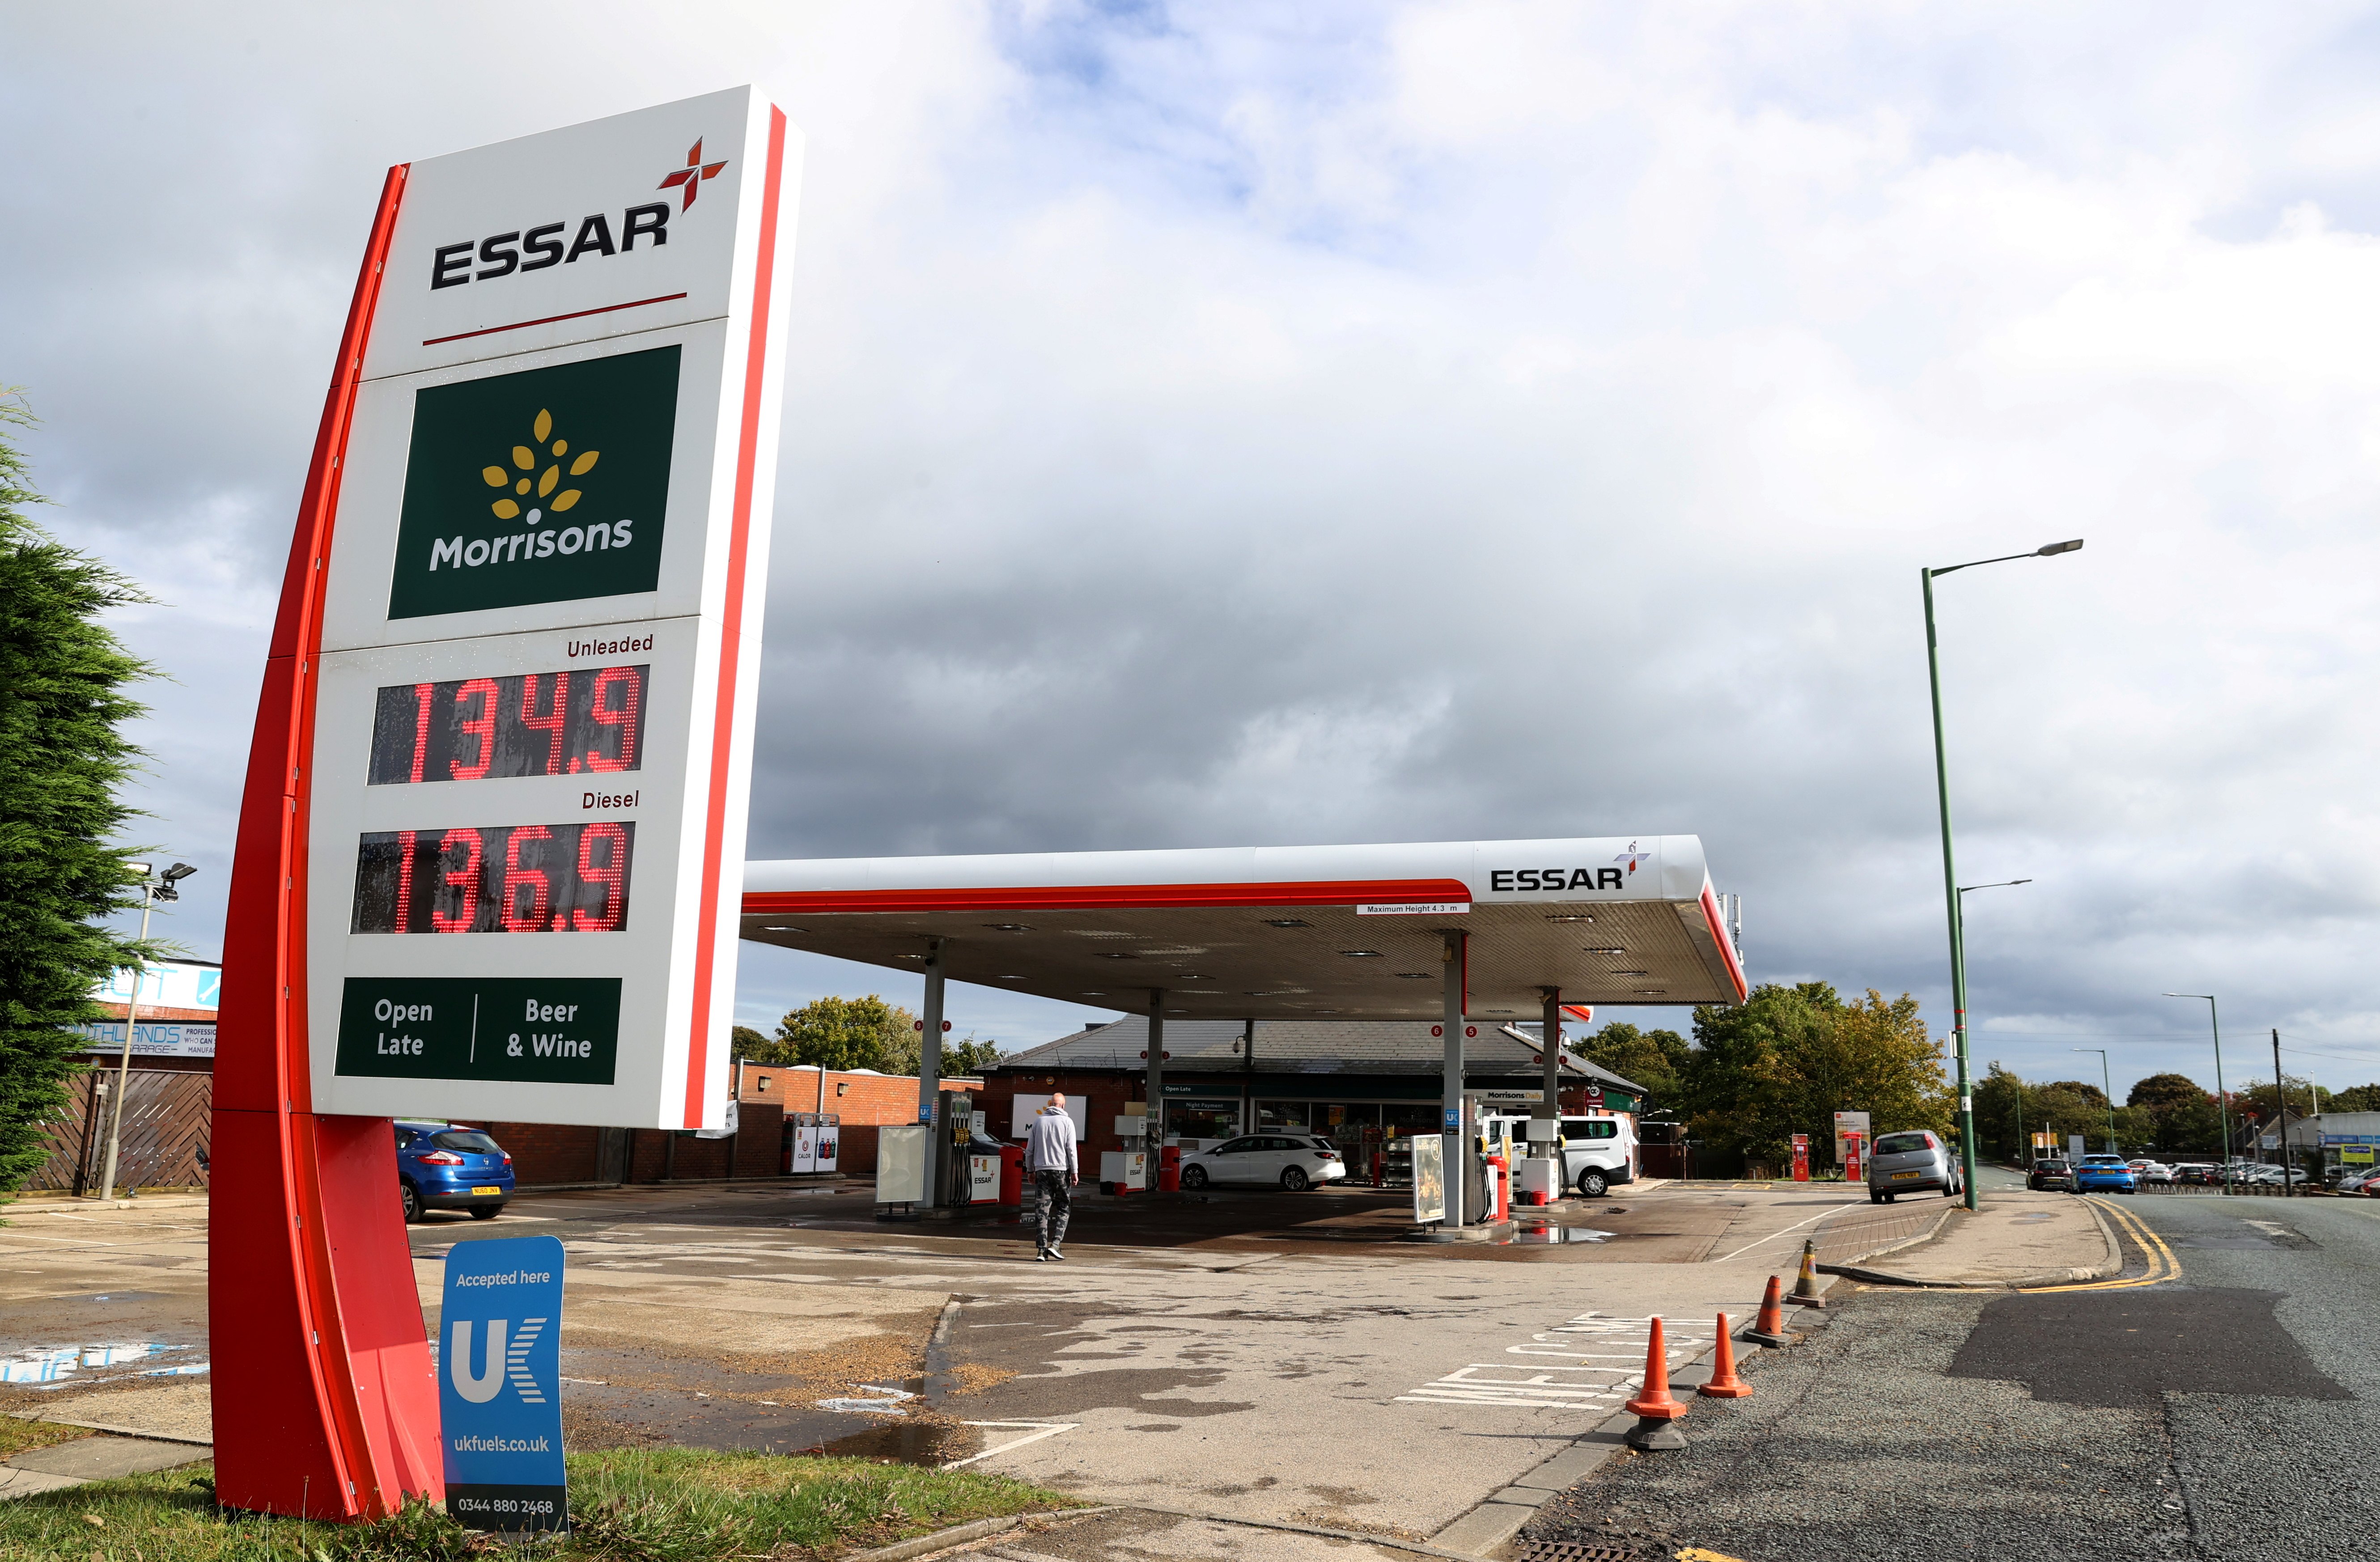 An Essar petrol station forecourt in Stanley, County Durham, Britain, September 27, 2021.  REUTERS/Lee Smith